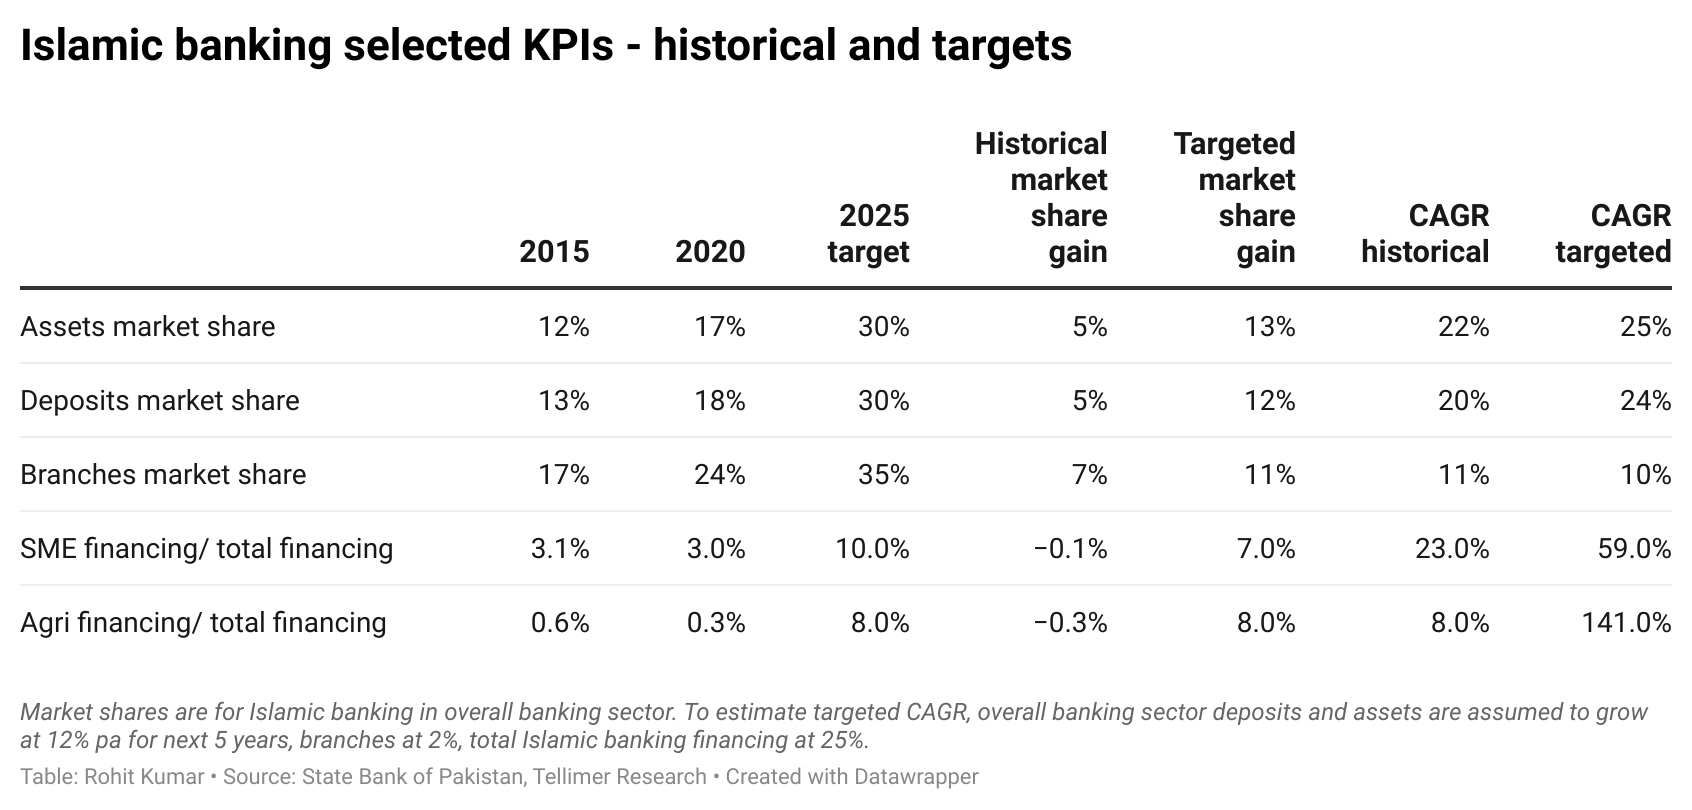 Islamic banking selected KPIs - historical and targets